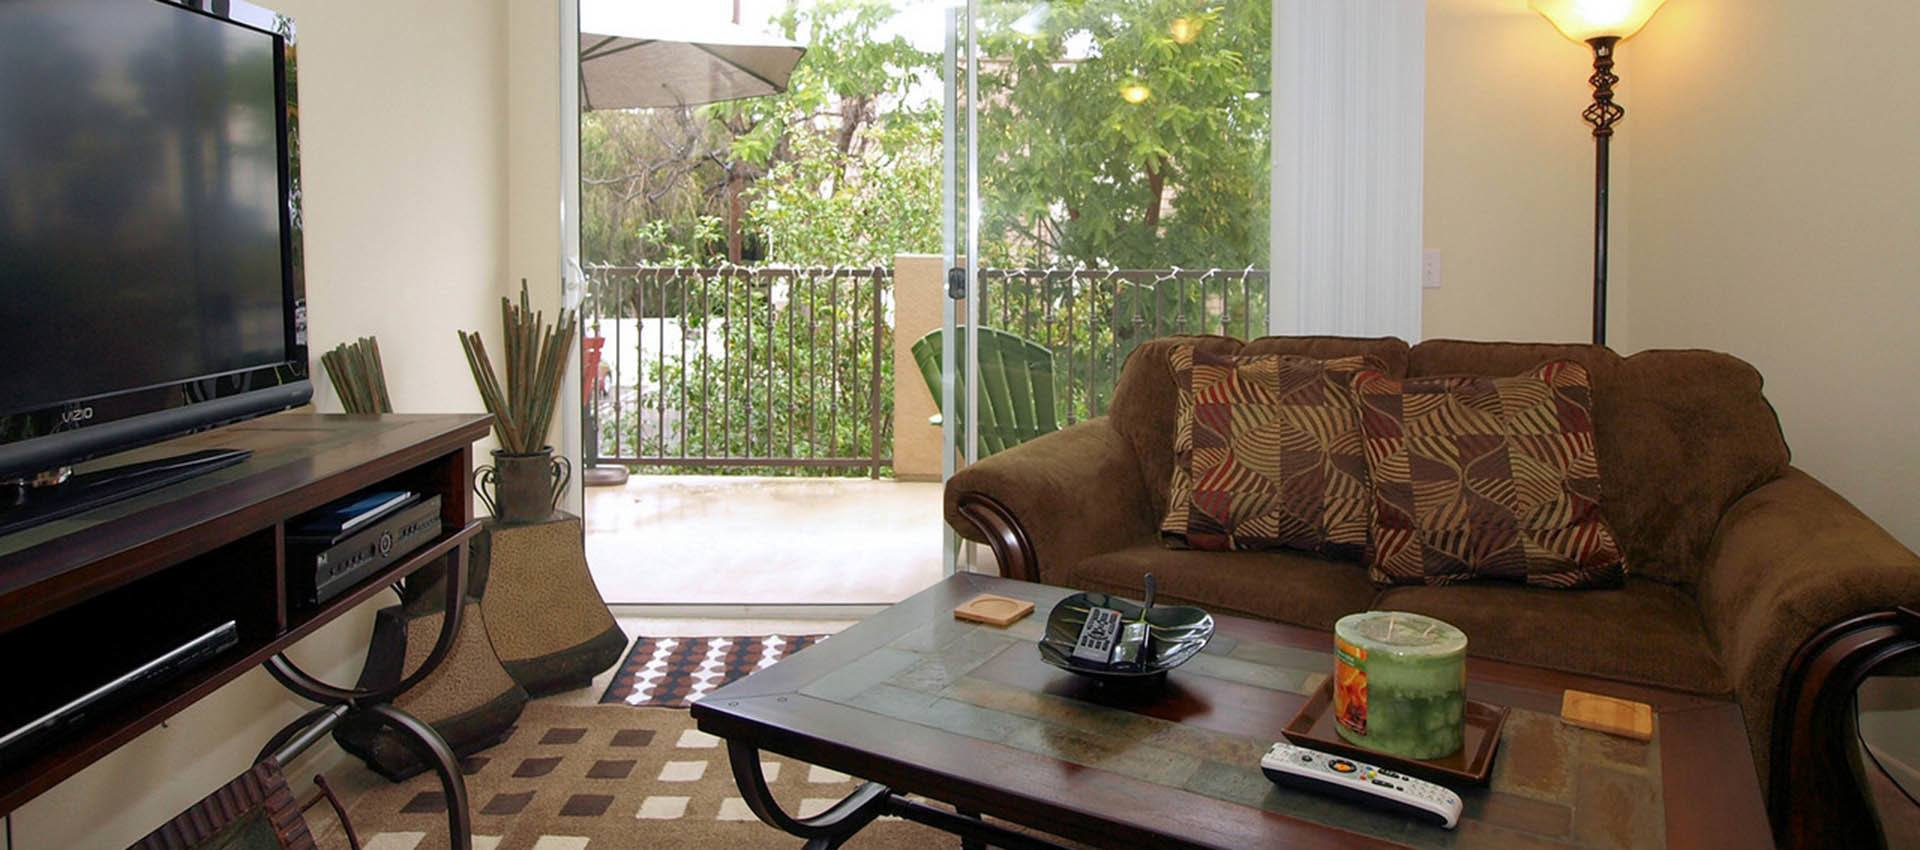 Living Room With Balcony at Cypress Villas Apartment Homes in Redlands, CA